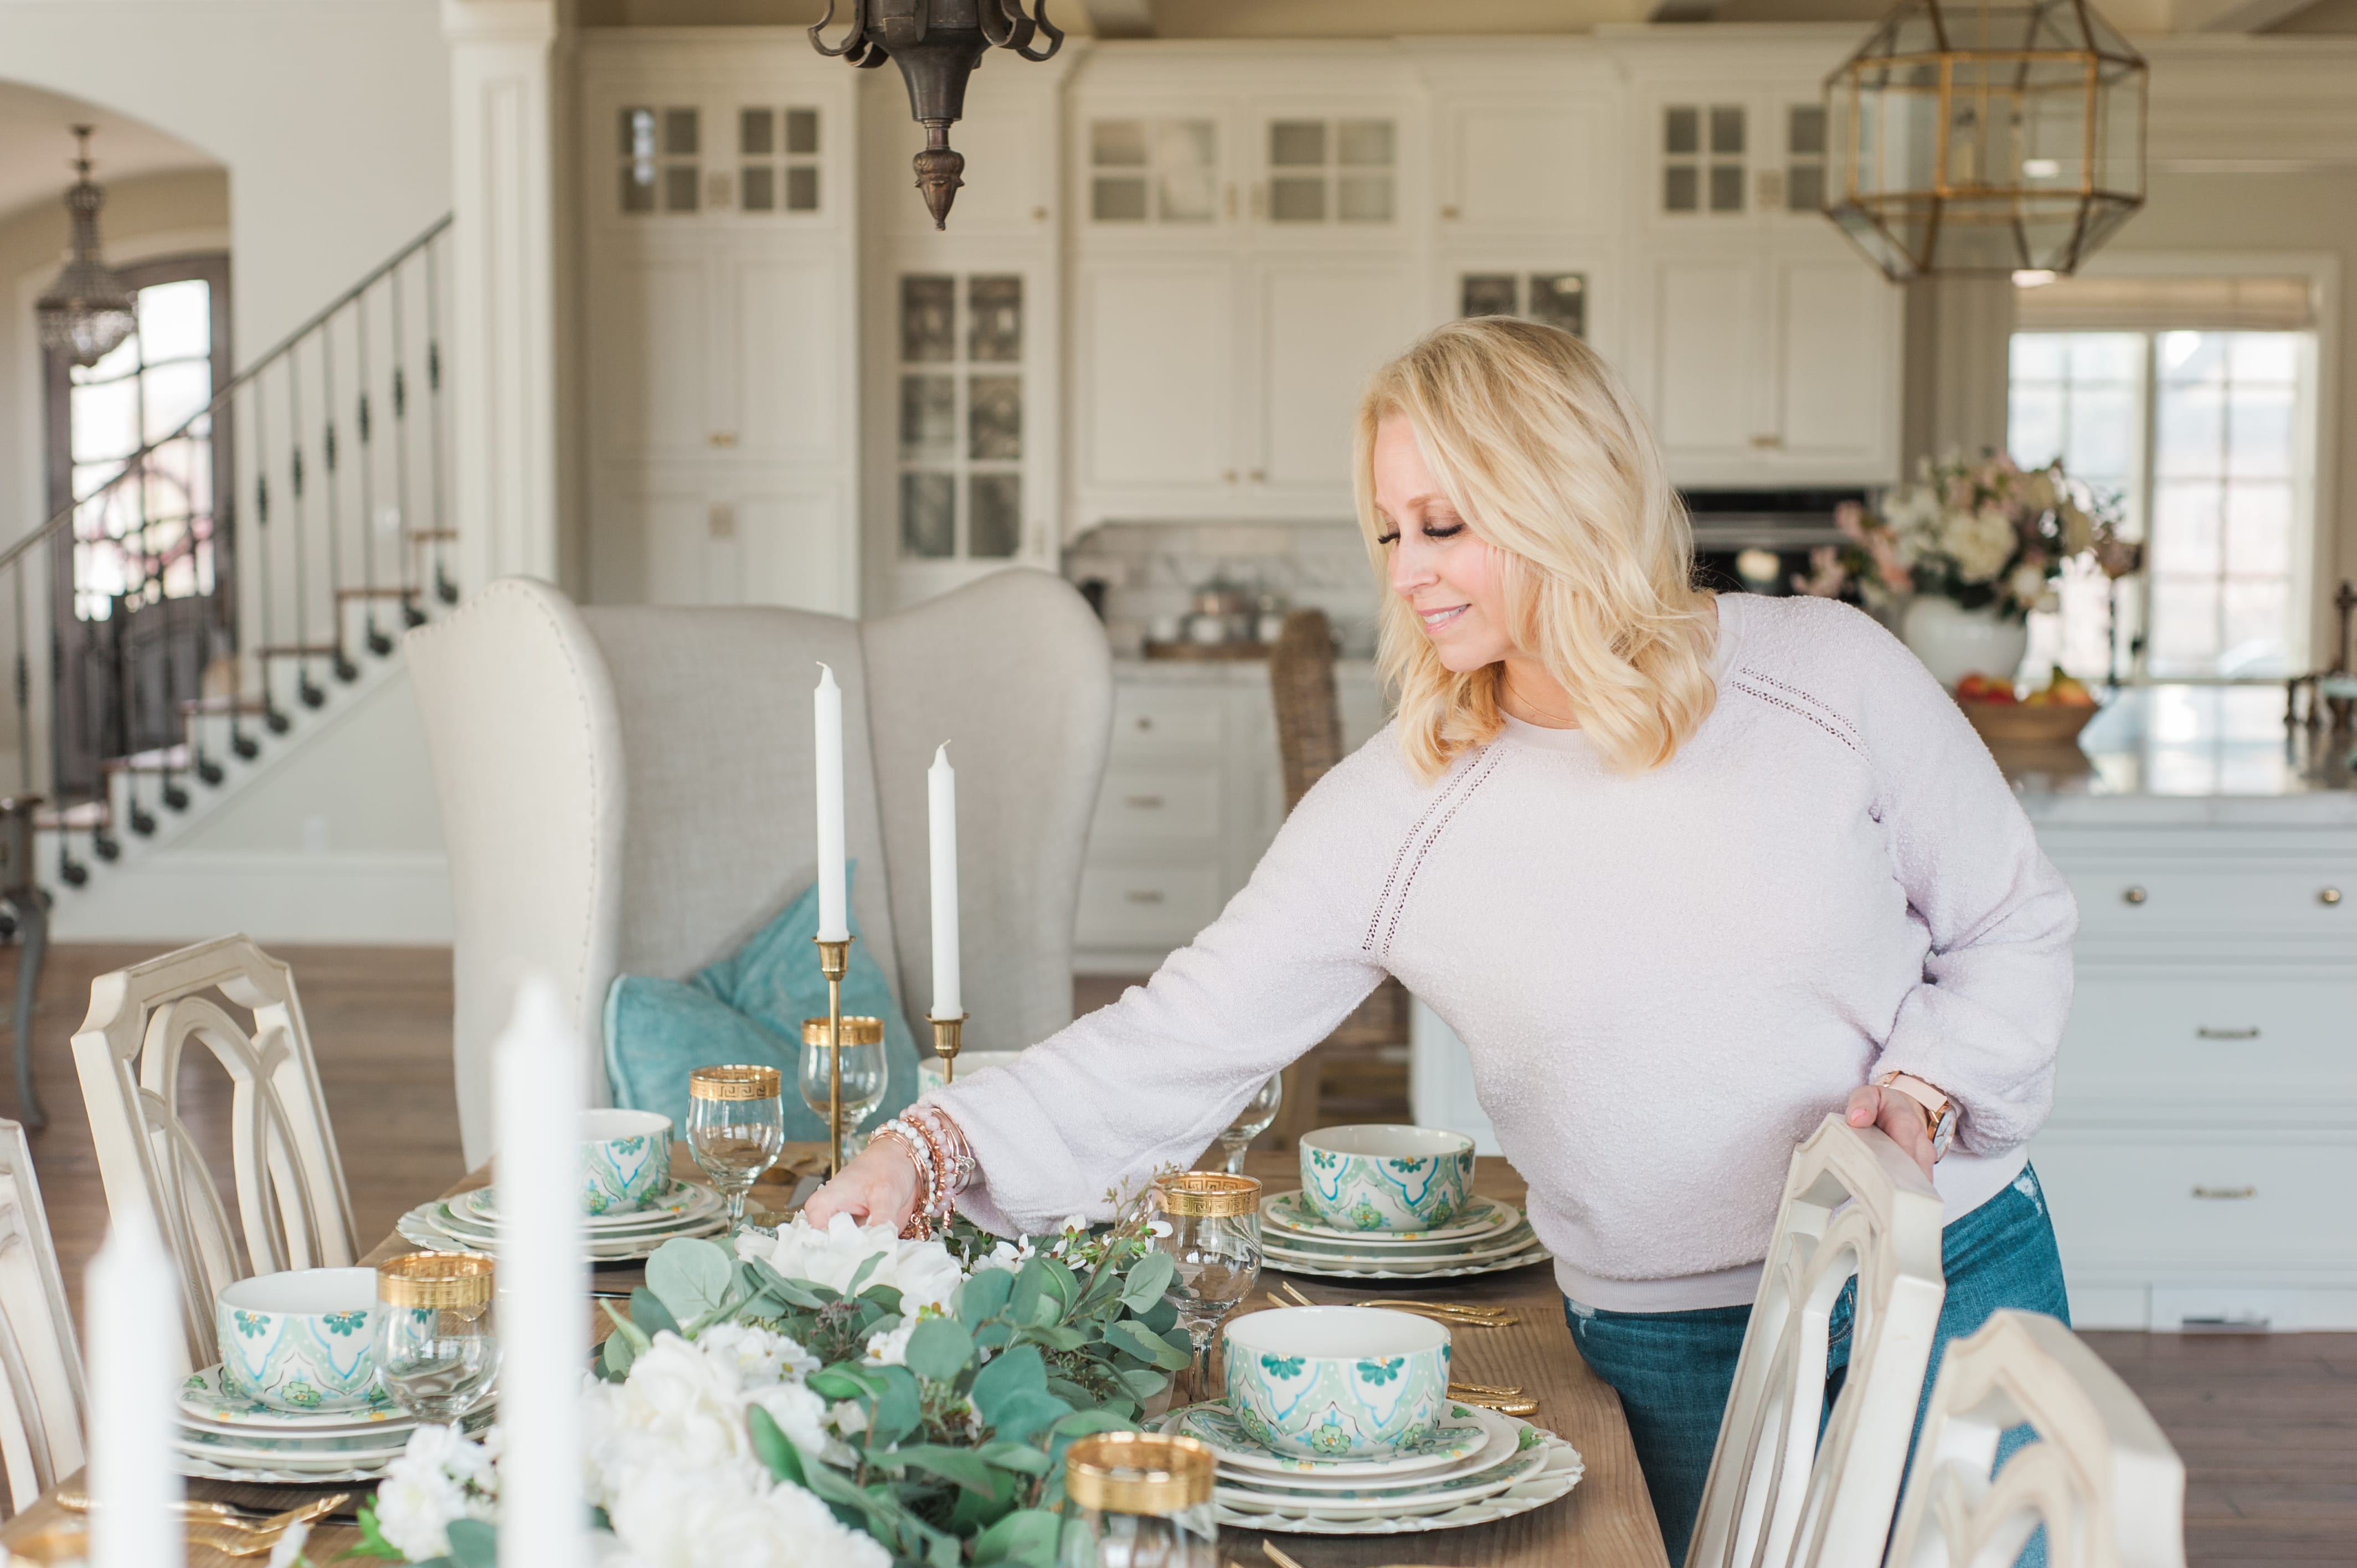 setting an easter tablescape